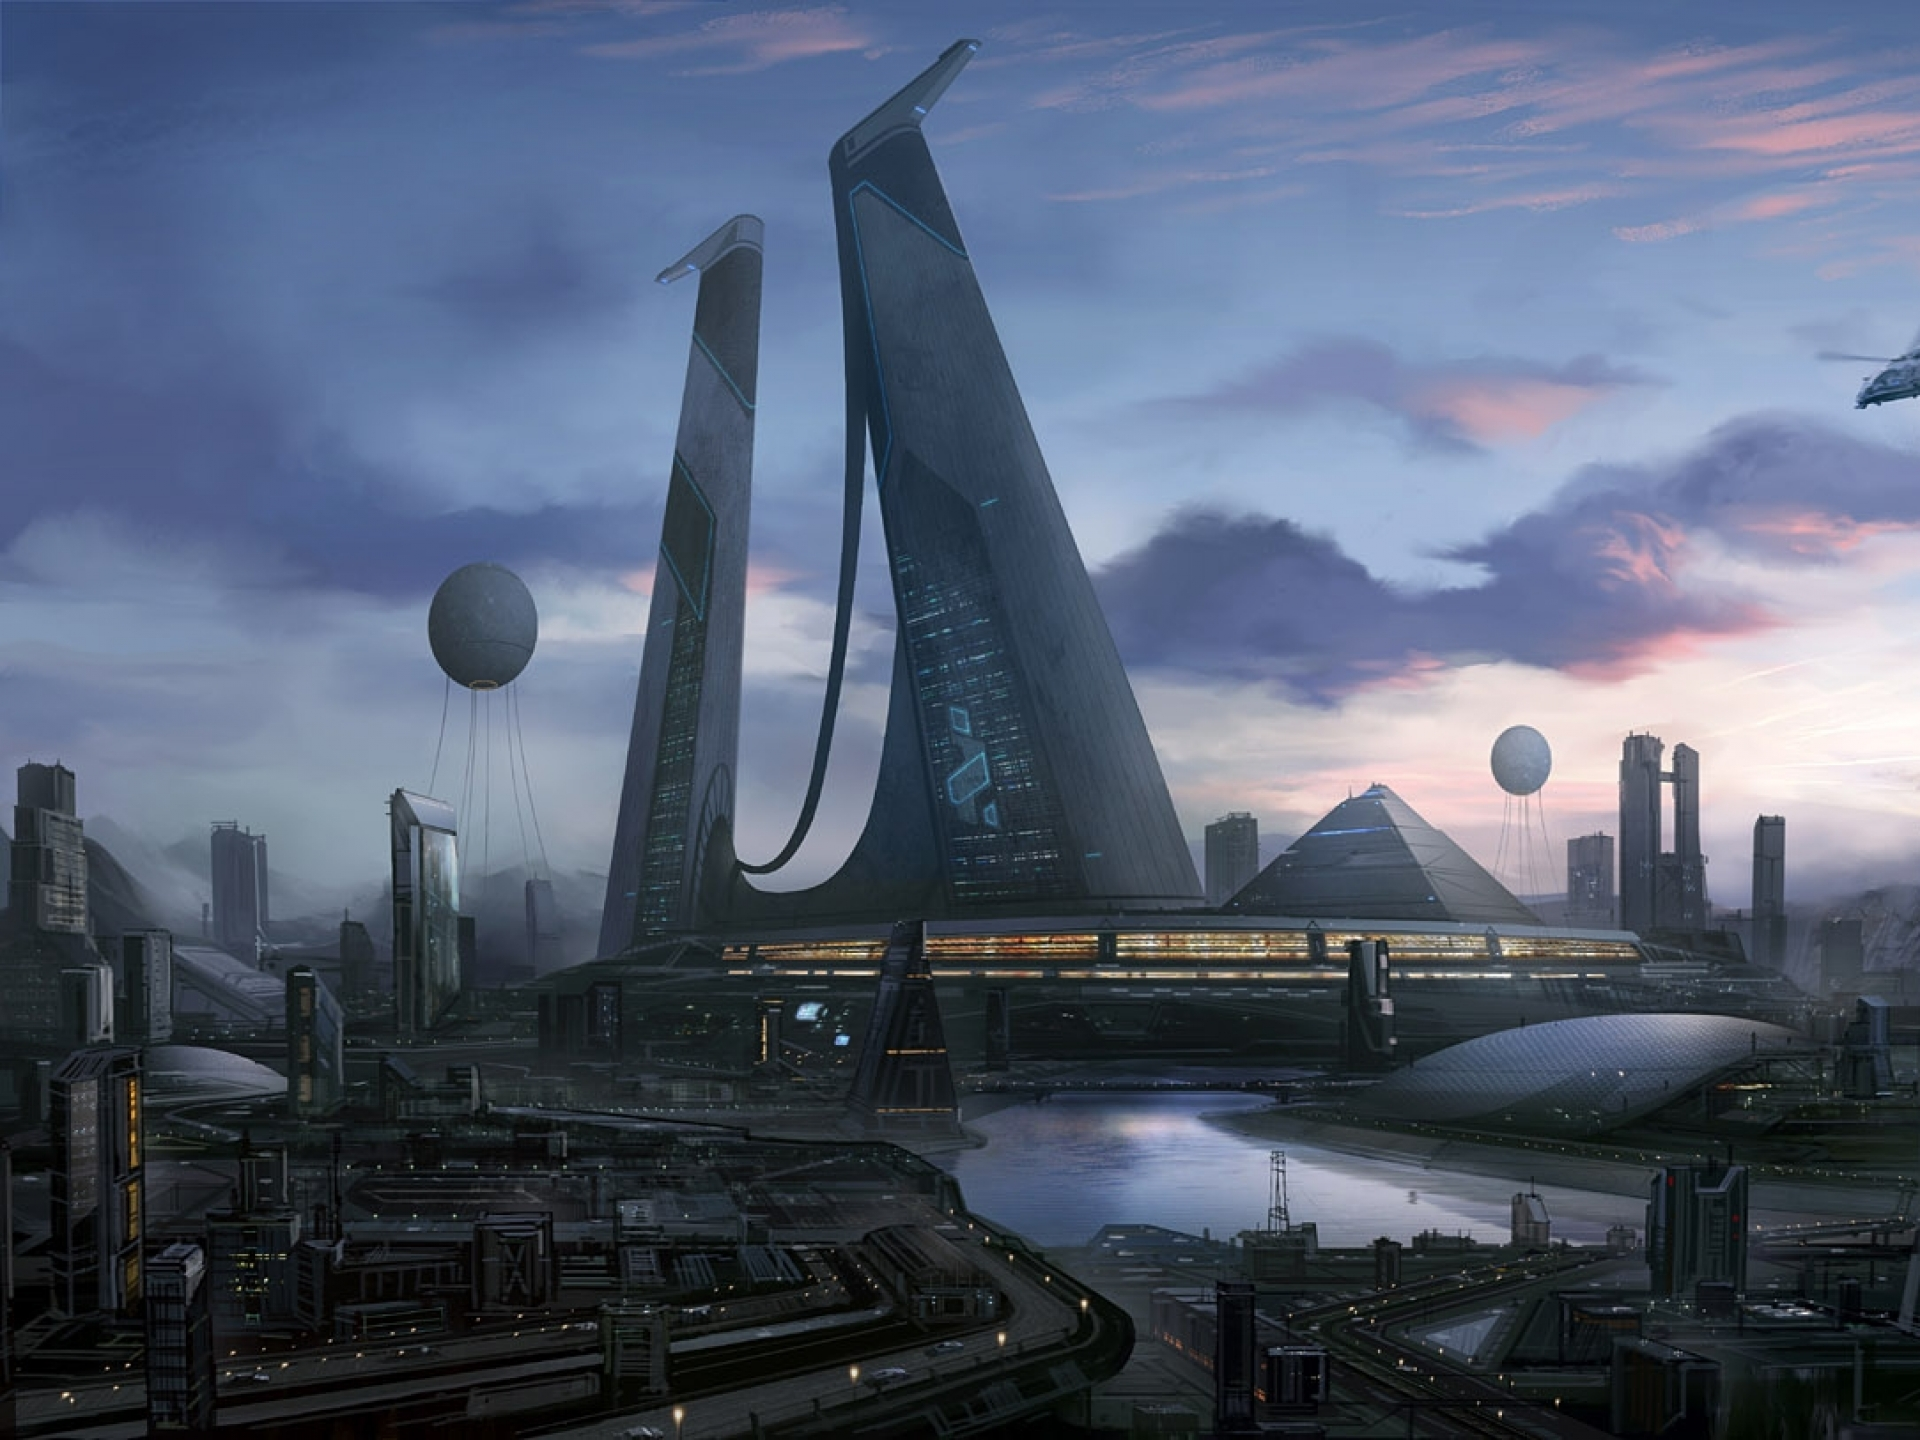 science fiction 1300x813 wallpaper High Resolution WallpaperHi Res 1920x1440